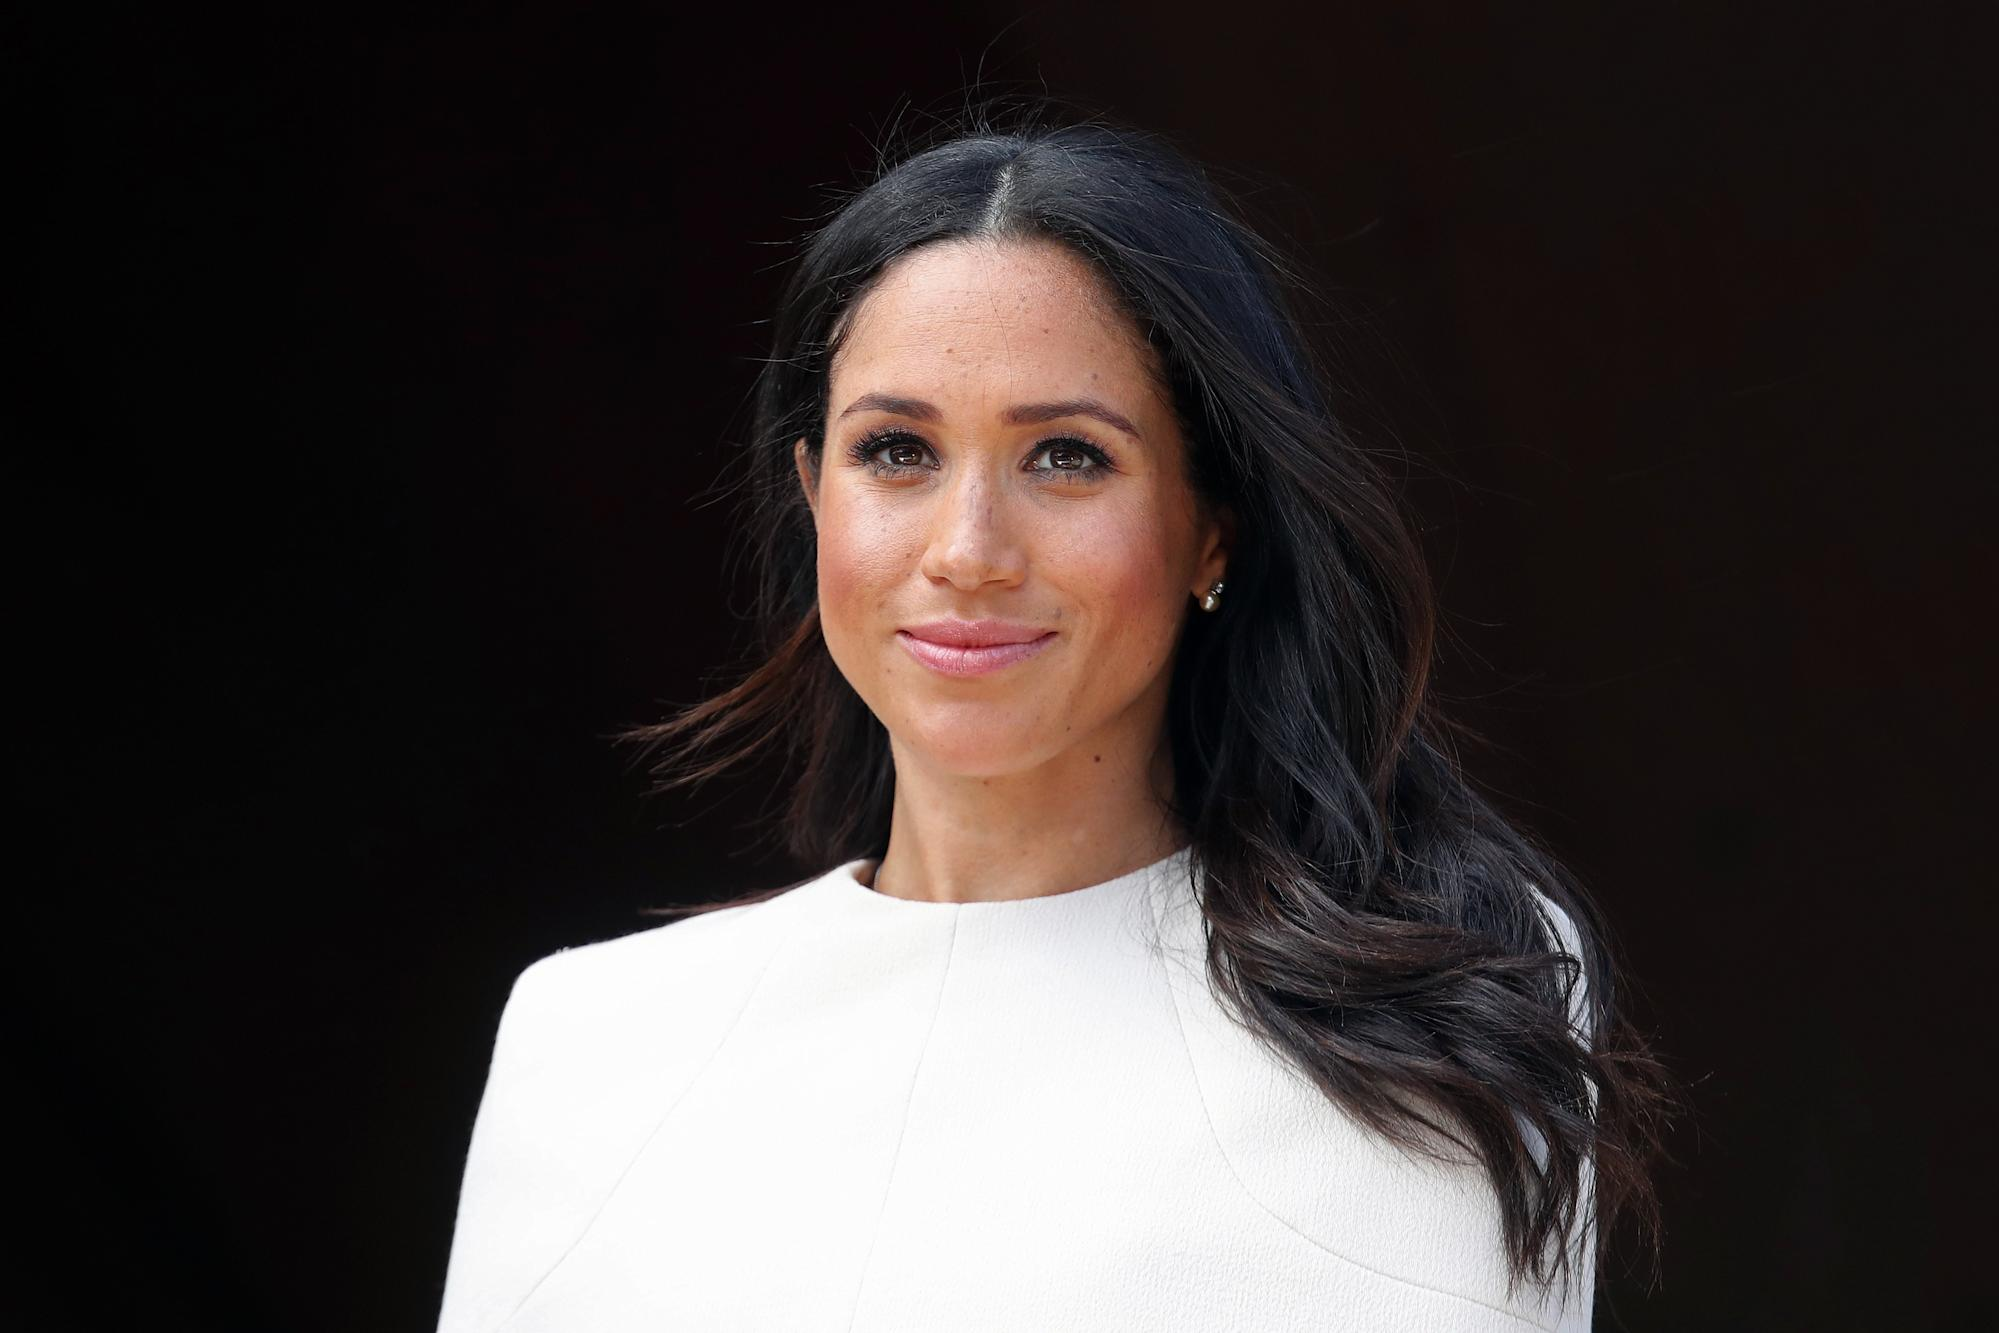 From riches to rags: The royal downfall of Meghan Markle